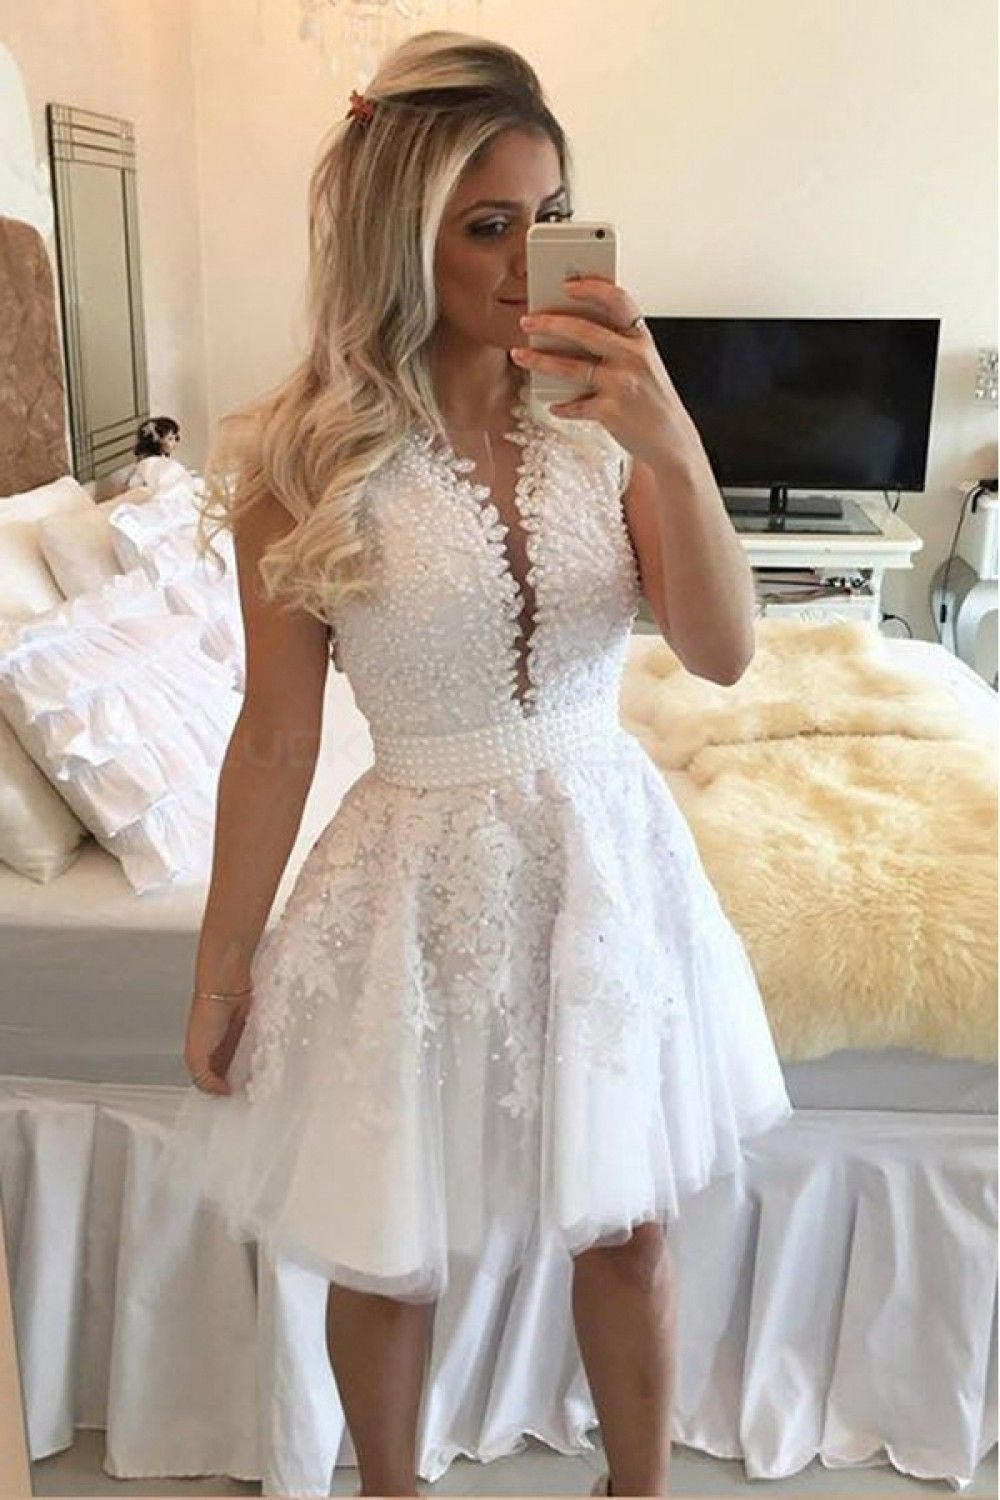 b8449650857 Beaded Lace Short White Prom Homecoming Cocktail Graduation Dresses 3020964